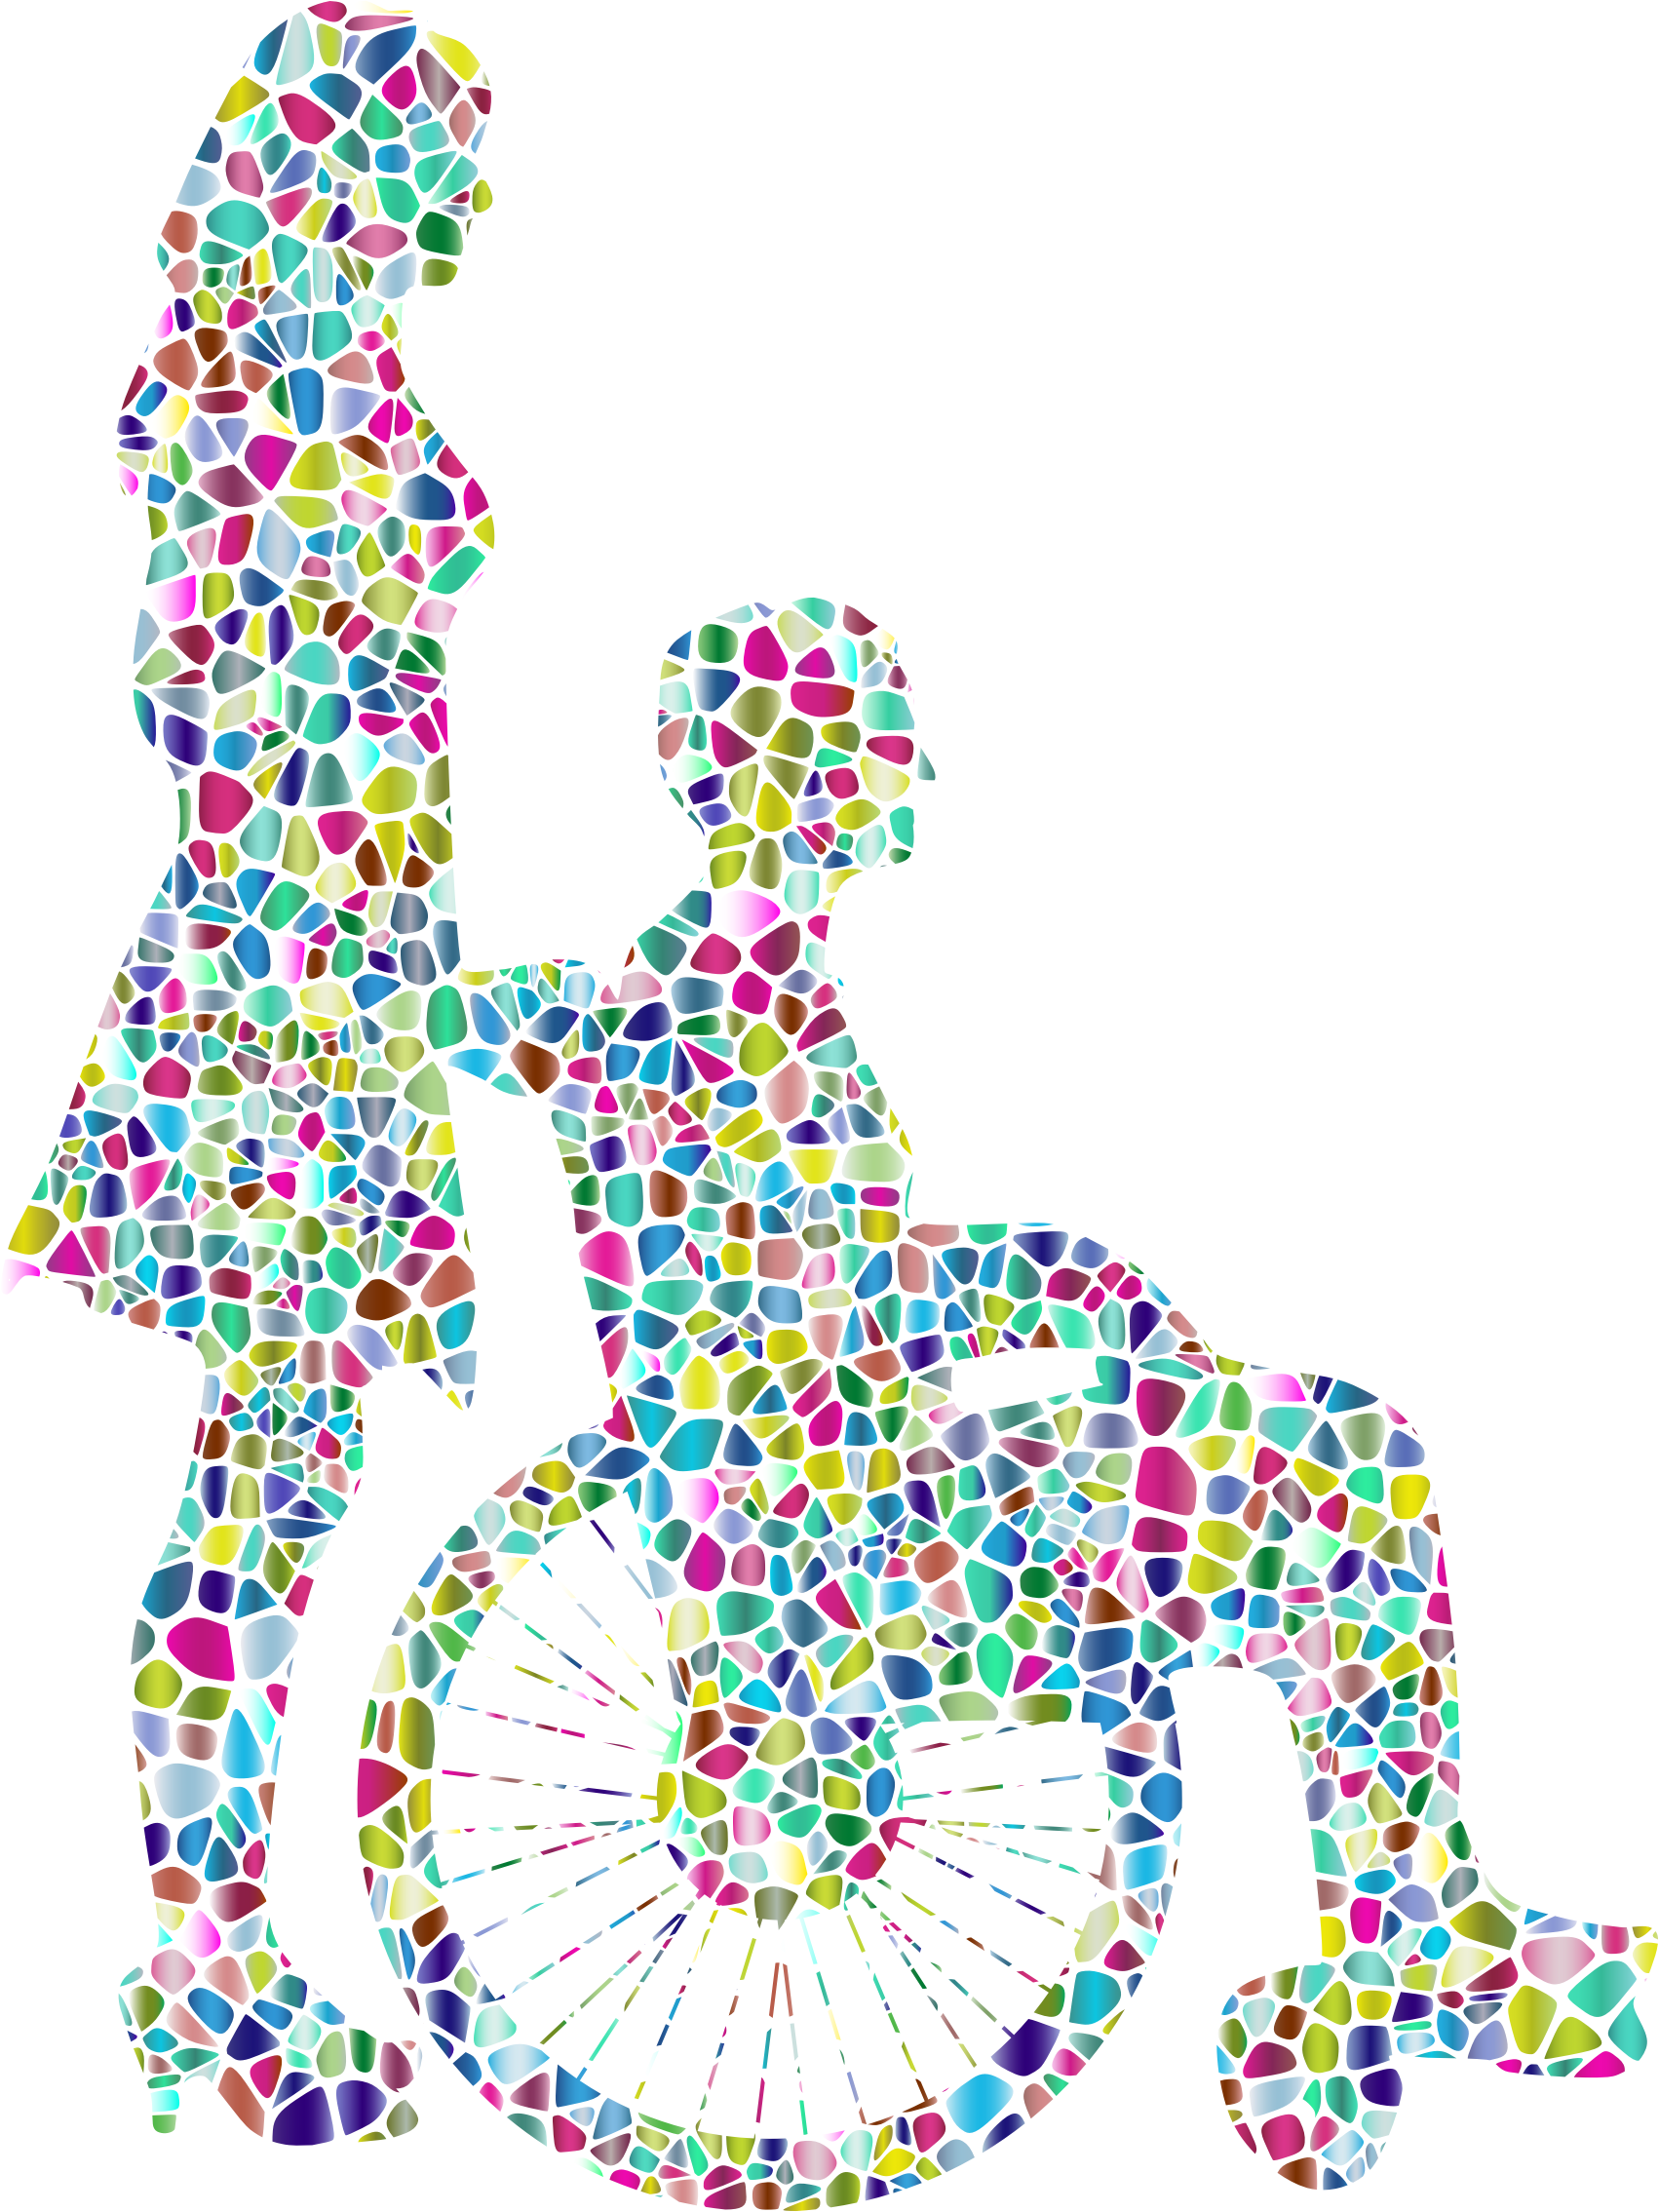 Polyprismatic Tiled Woman Pushing Man In Wheelchair Silhouette by GDJ